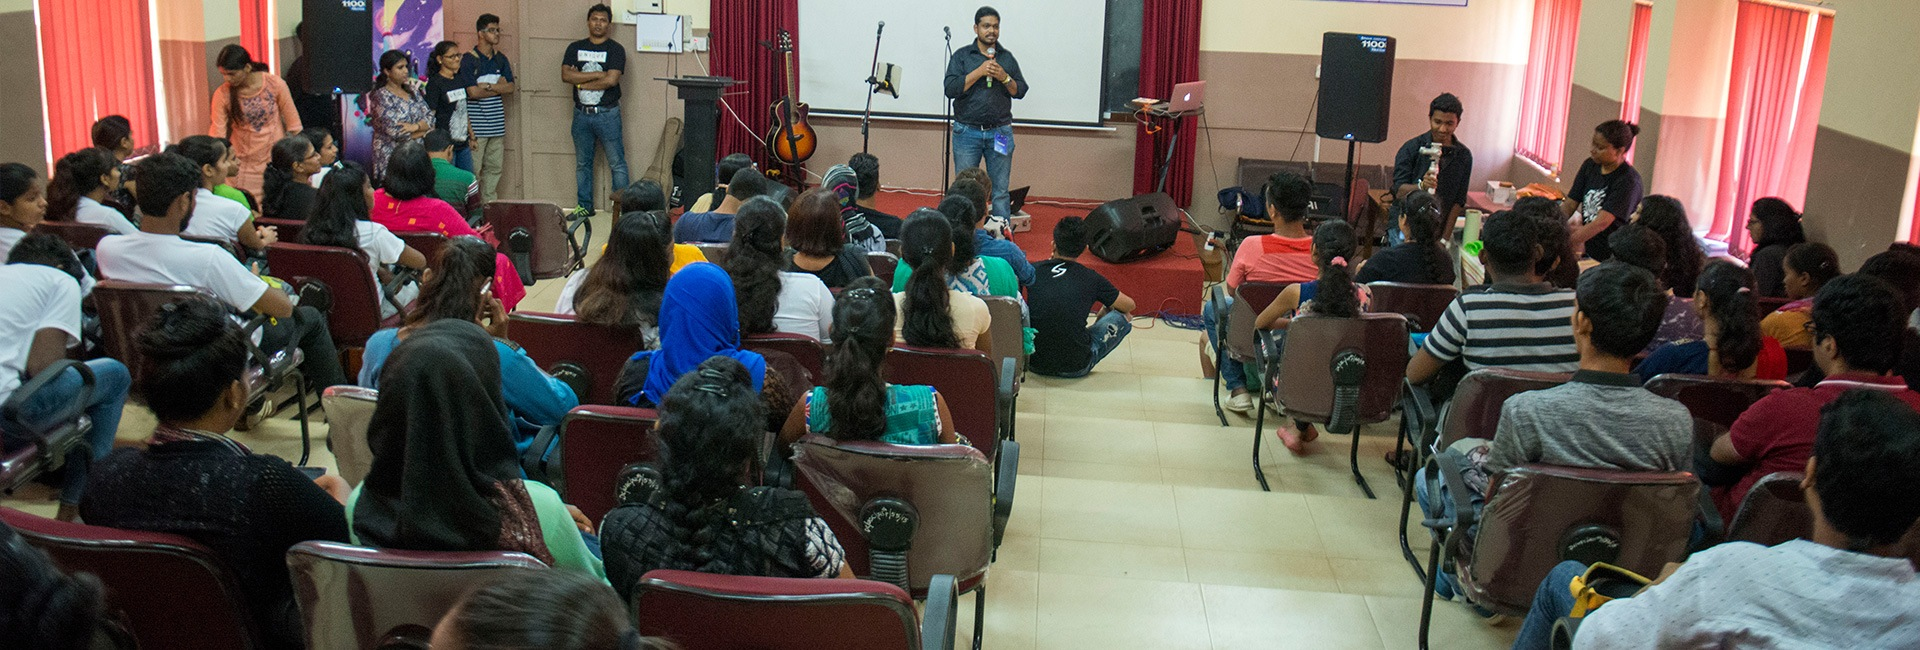 Bible Church Goa, Panjim, Bible teaching christian church, Church in Panjim, Church in Goa